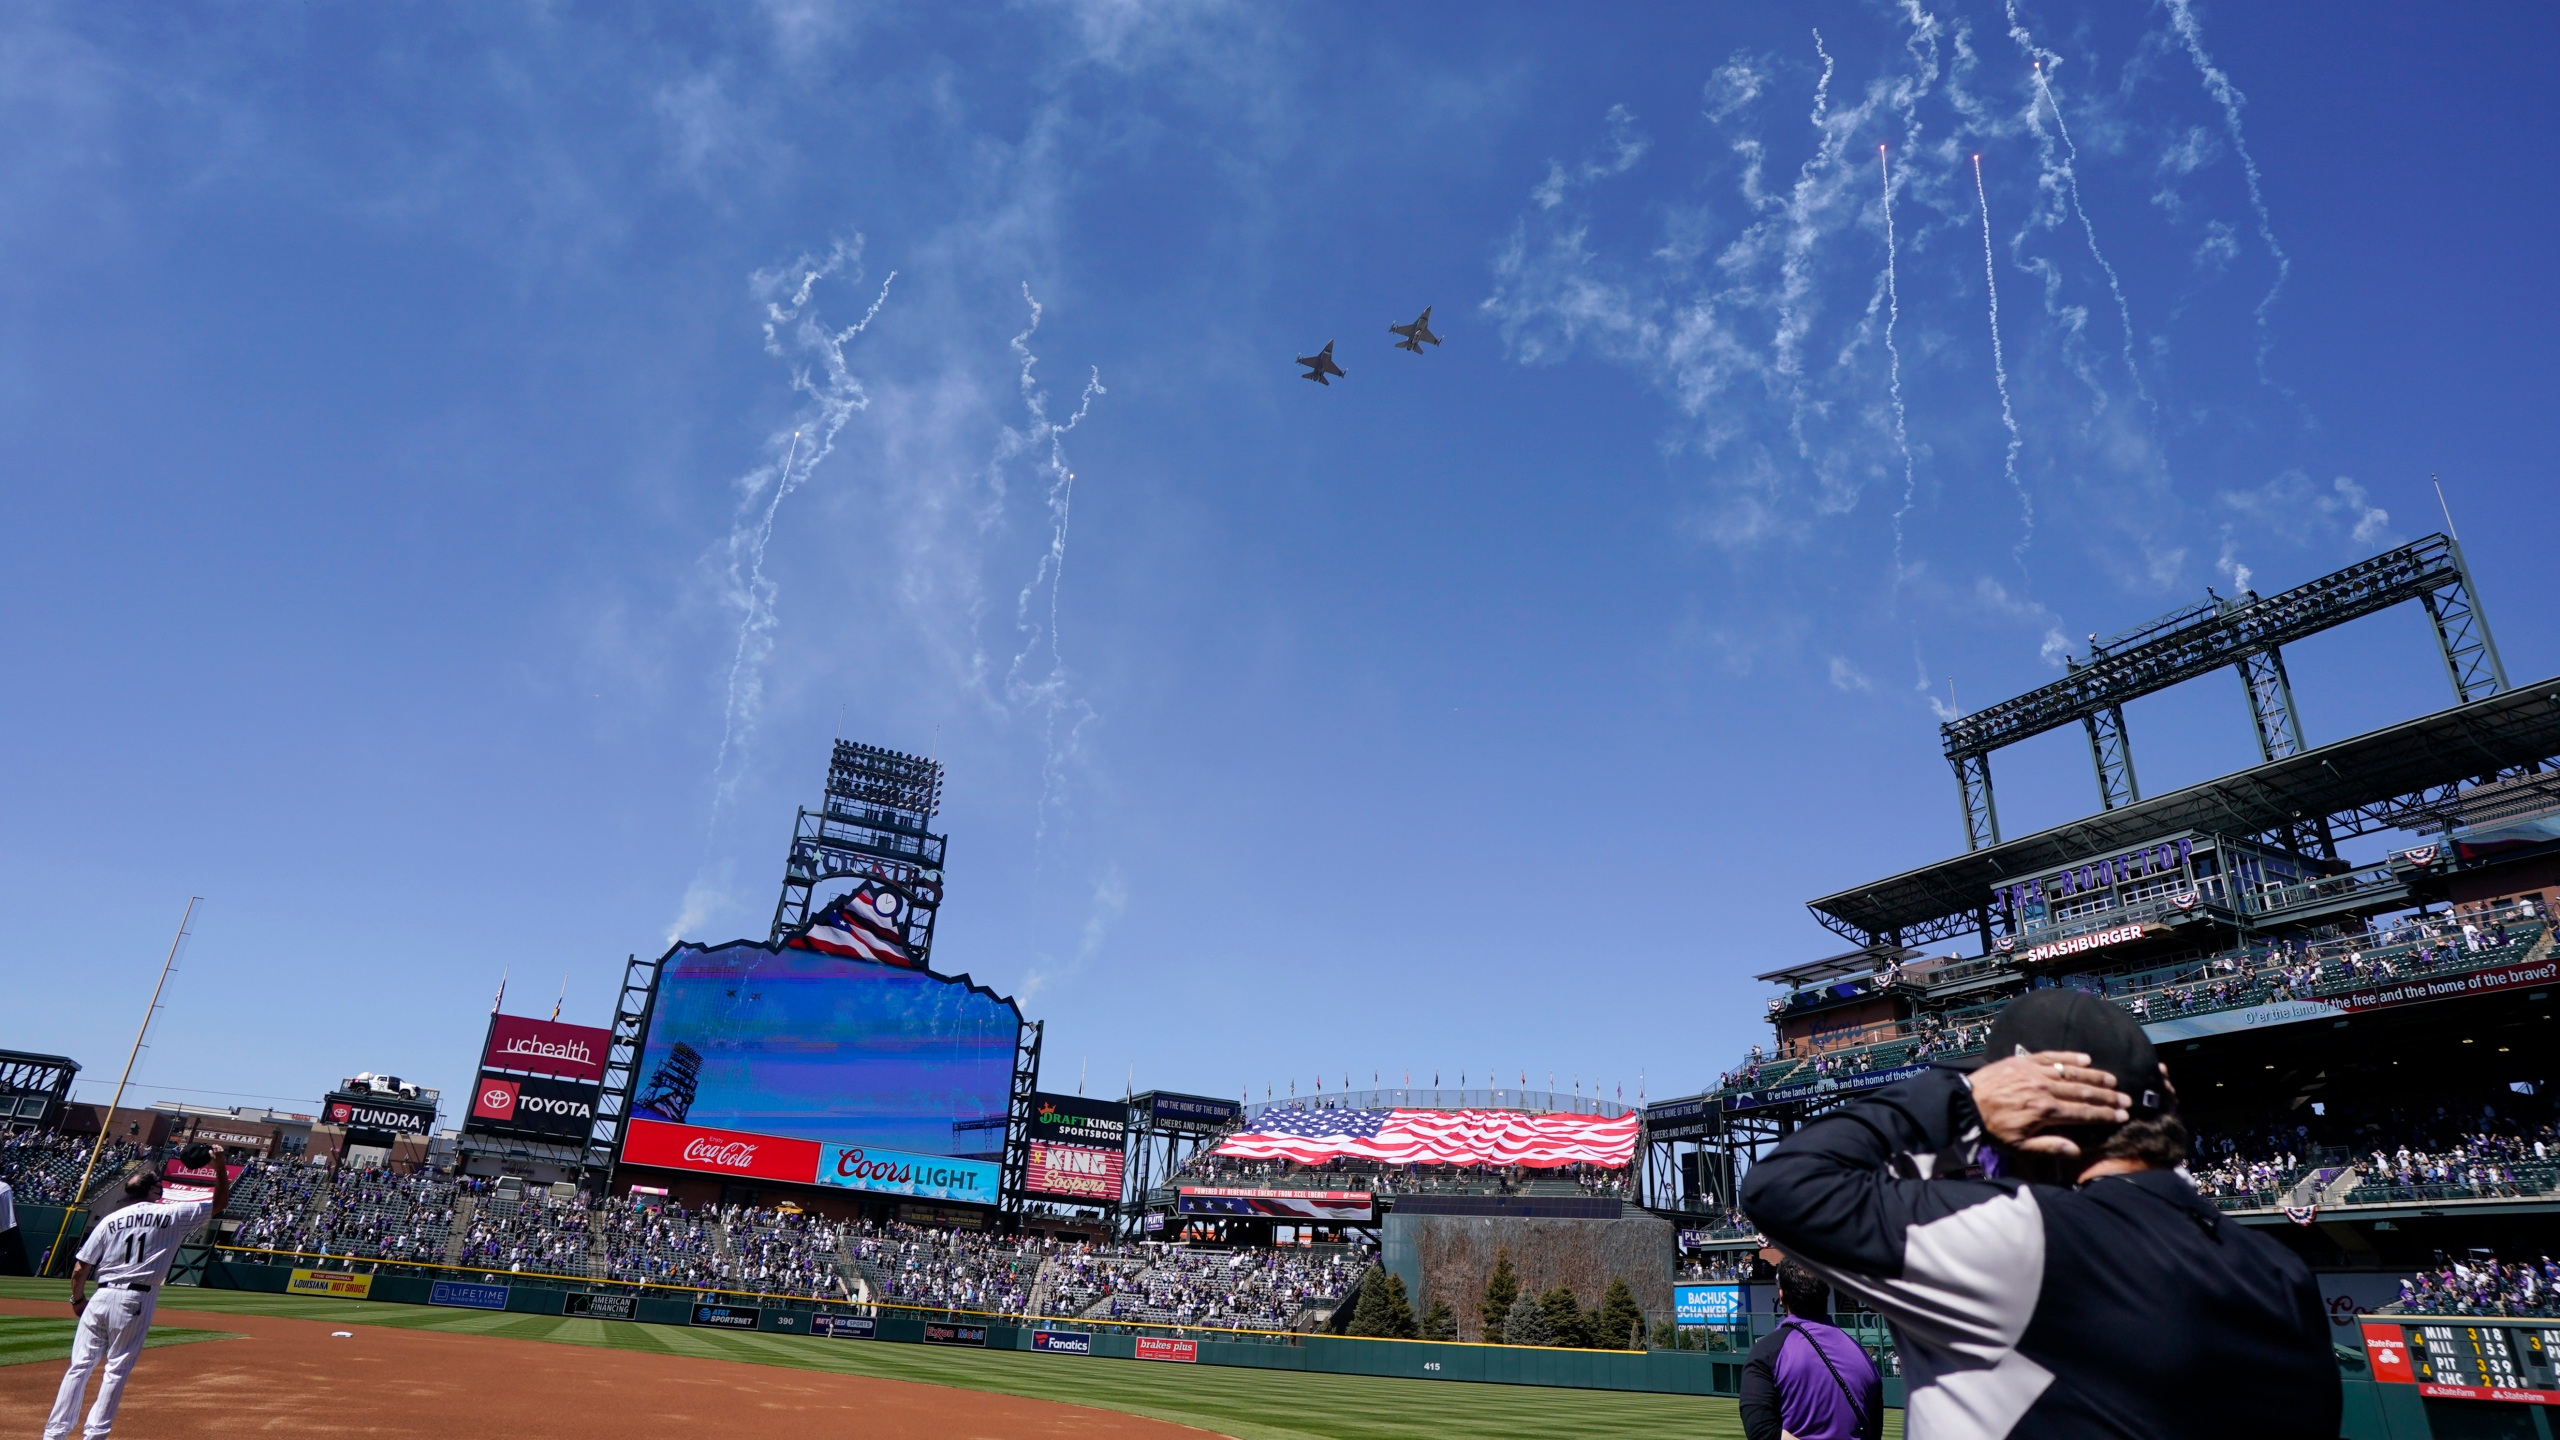 Two F-16 jets from Buckley Air Force Base in Aurora, Colo., fly over Coors Field before a baseball game between the Los Angeles Dodgers and the Colorado Rockies on opening day, Thursday, April 1, 2021, in Denver. (AP Photo/David Zalubowski)